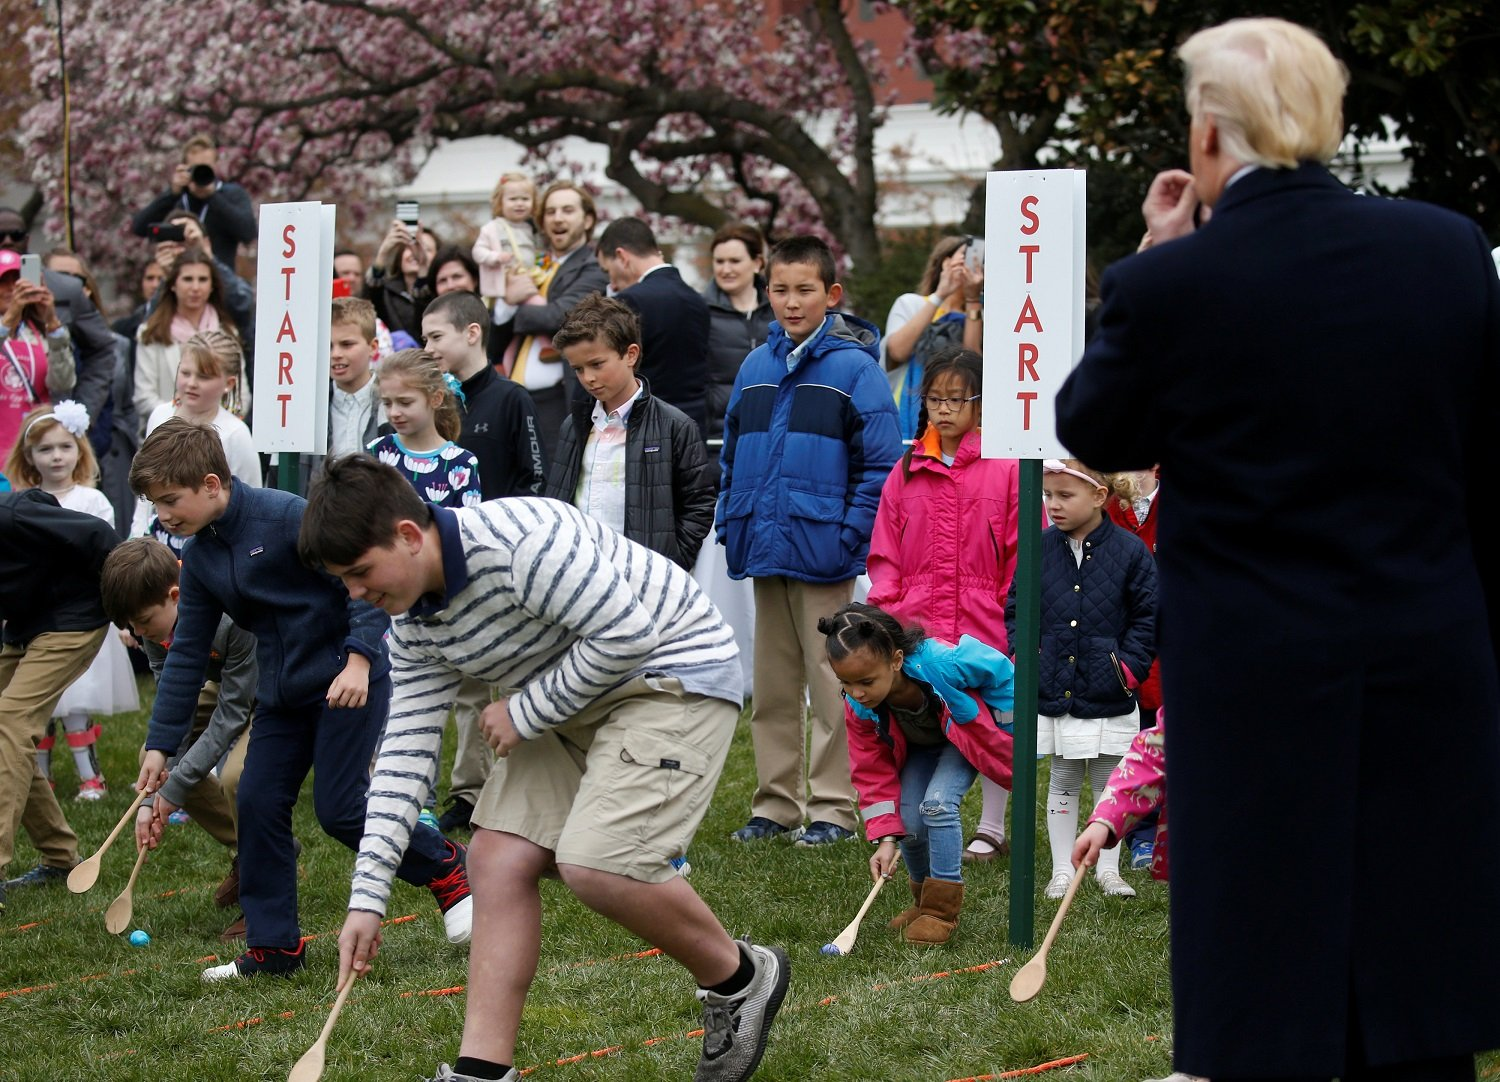 U.S. President Donald Trump blows the whistle to start an egg roll during the annual White House Easter Egg Roll on the South Lawn of the White House in Washington, April 2, 2018. REUTERS/Leah Millis